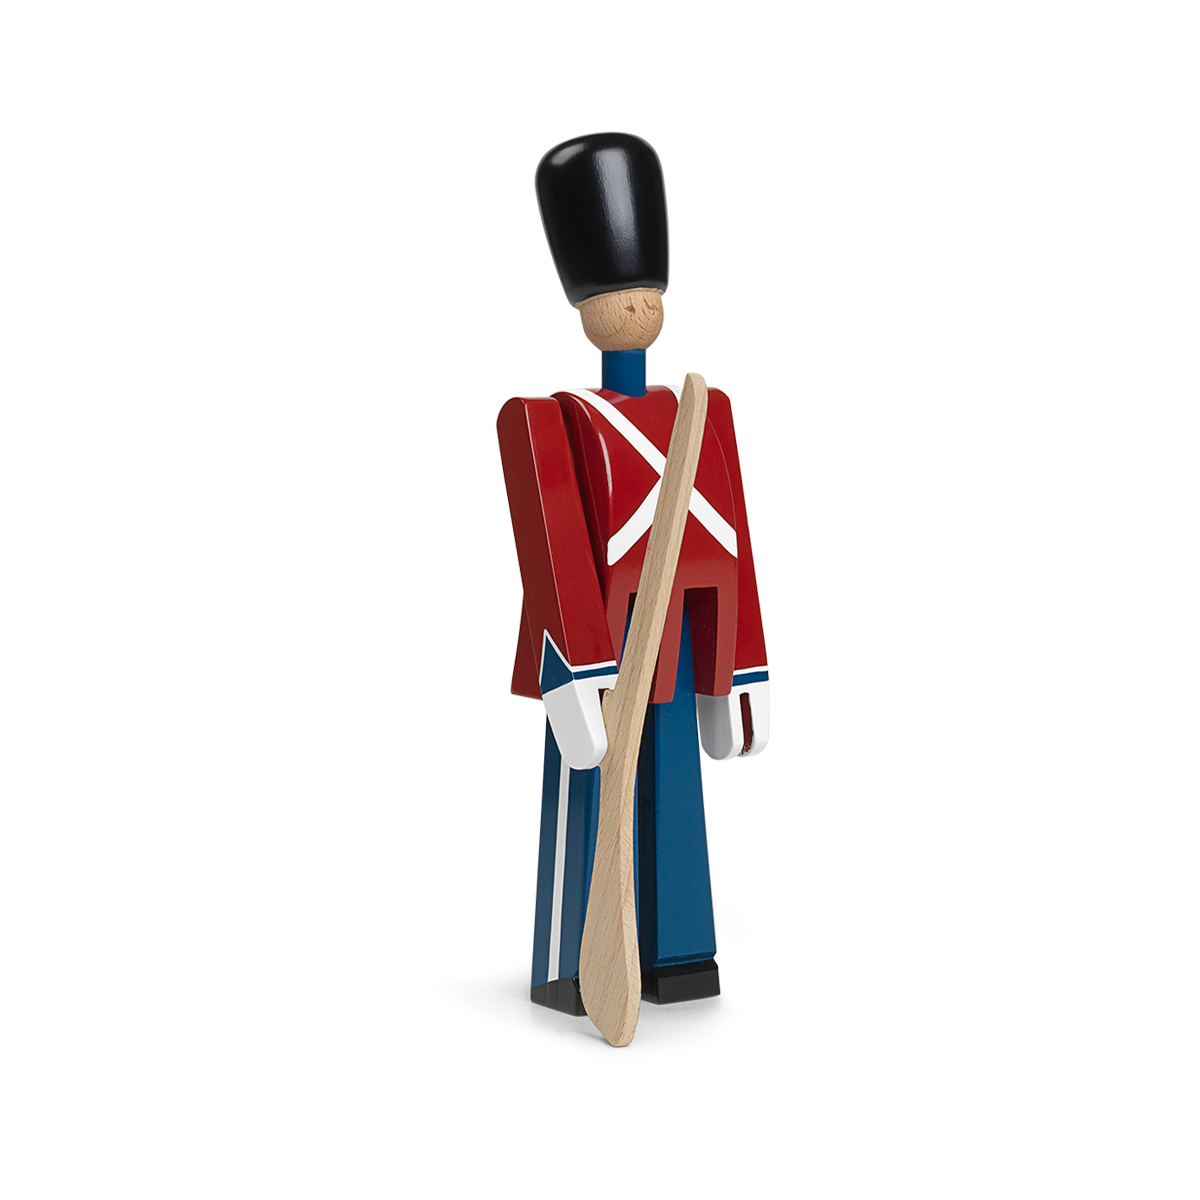 guardsman-with-gun-red-blue-white–1500×1500-2